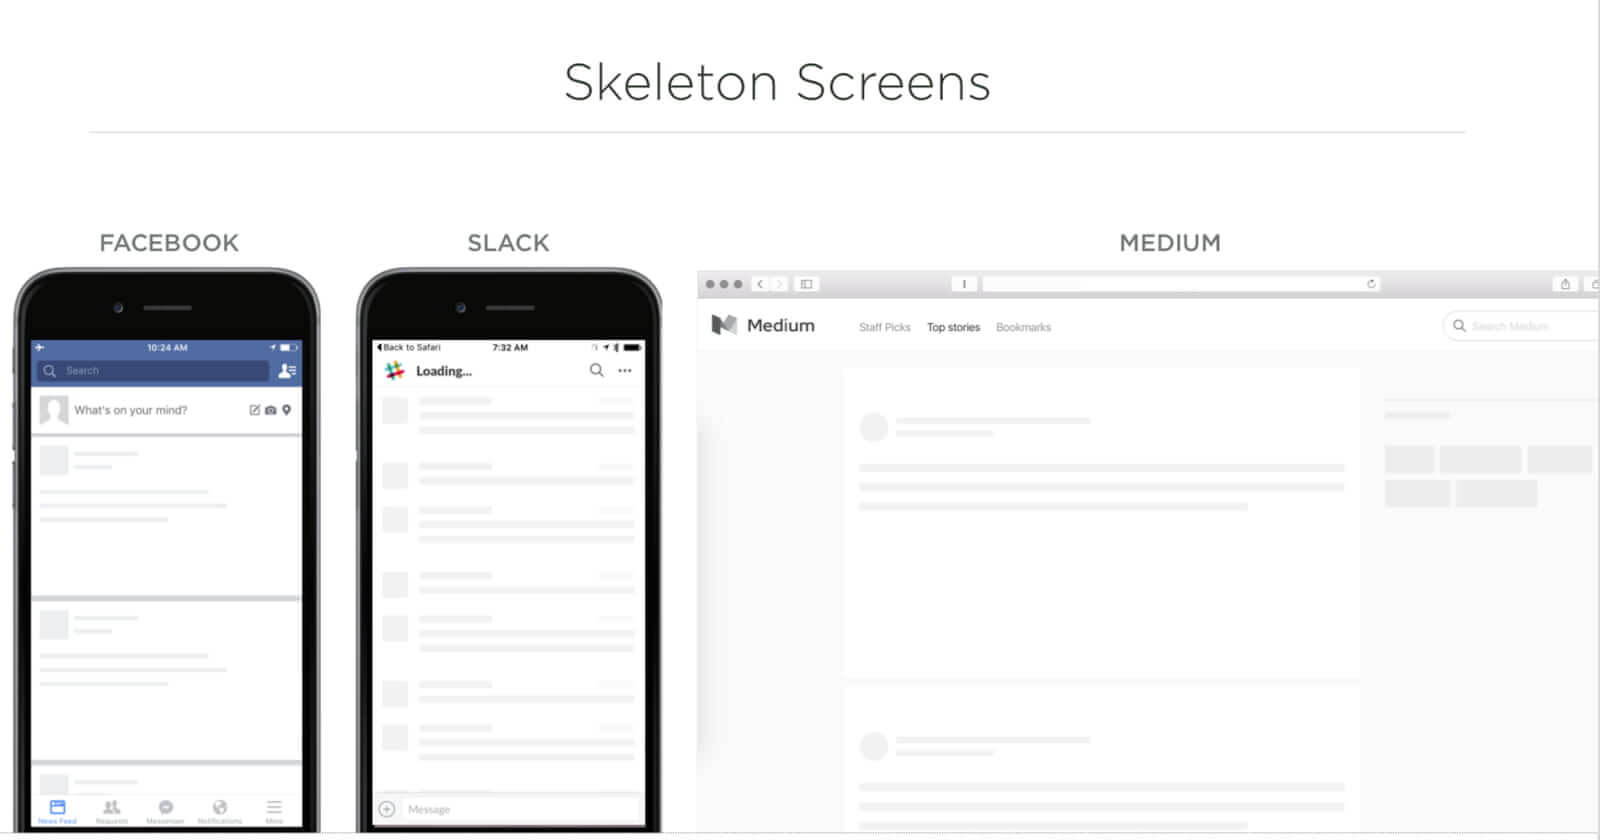 skeleton screens make a website feel faster.